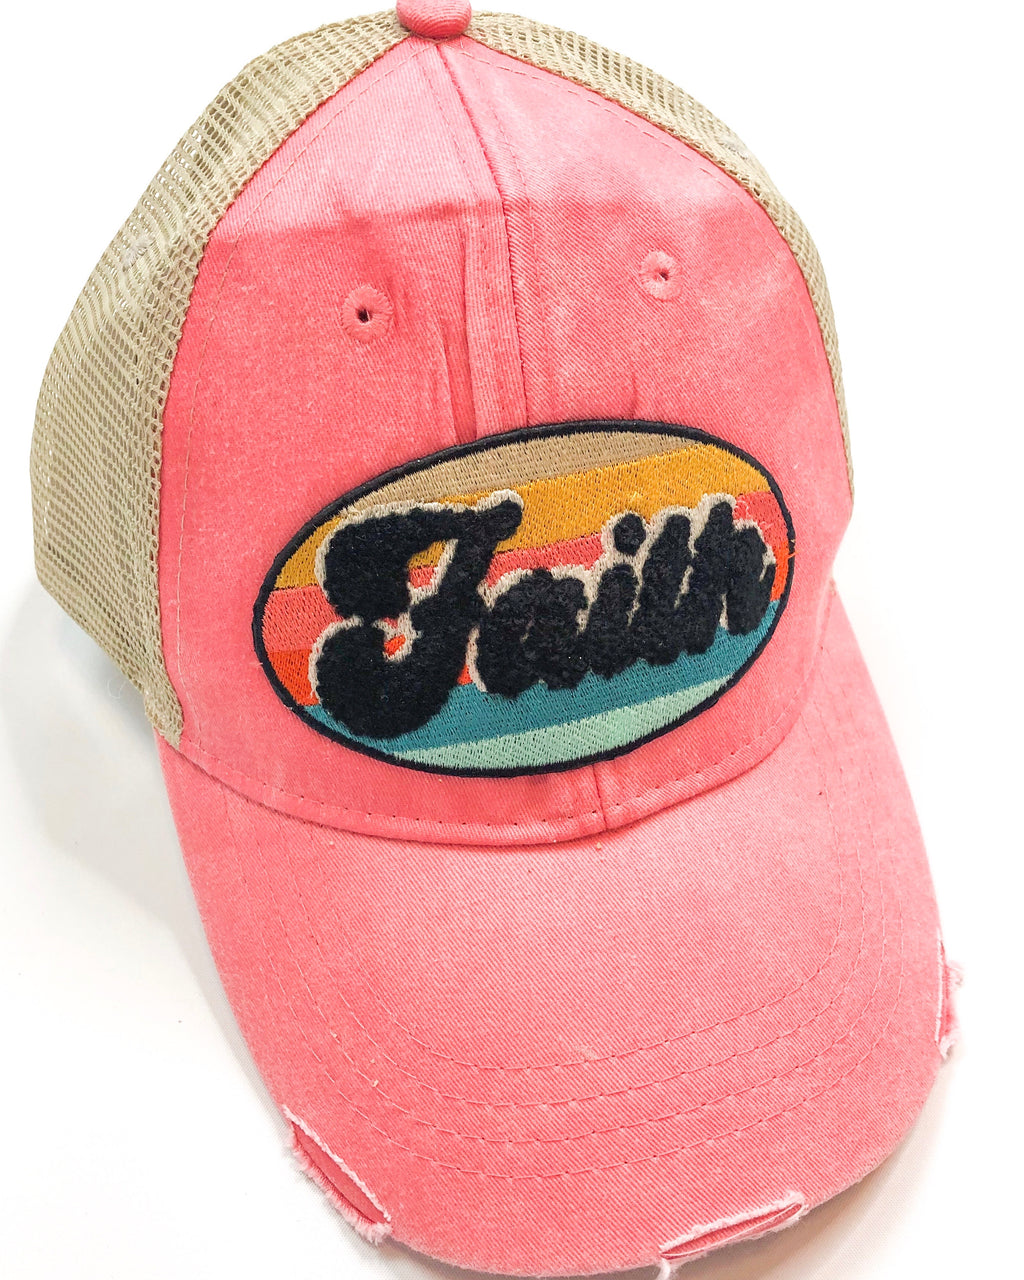 Vintage Distressed Faith Hat in Coral